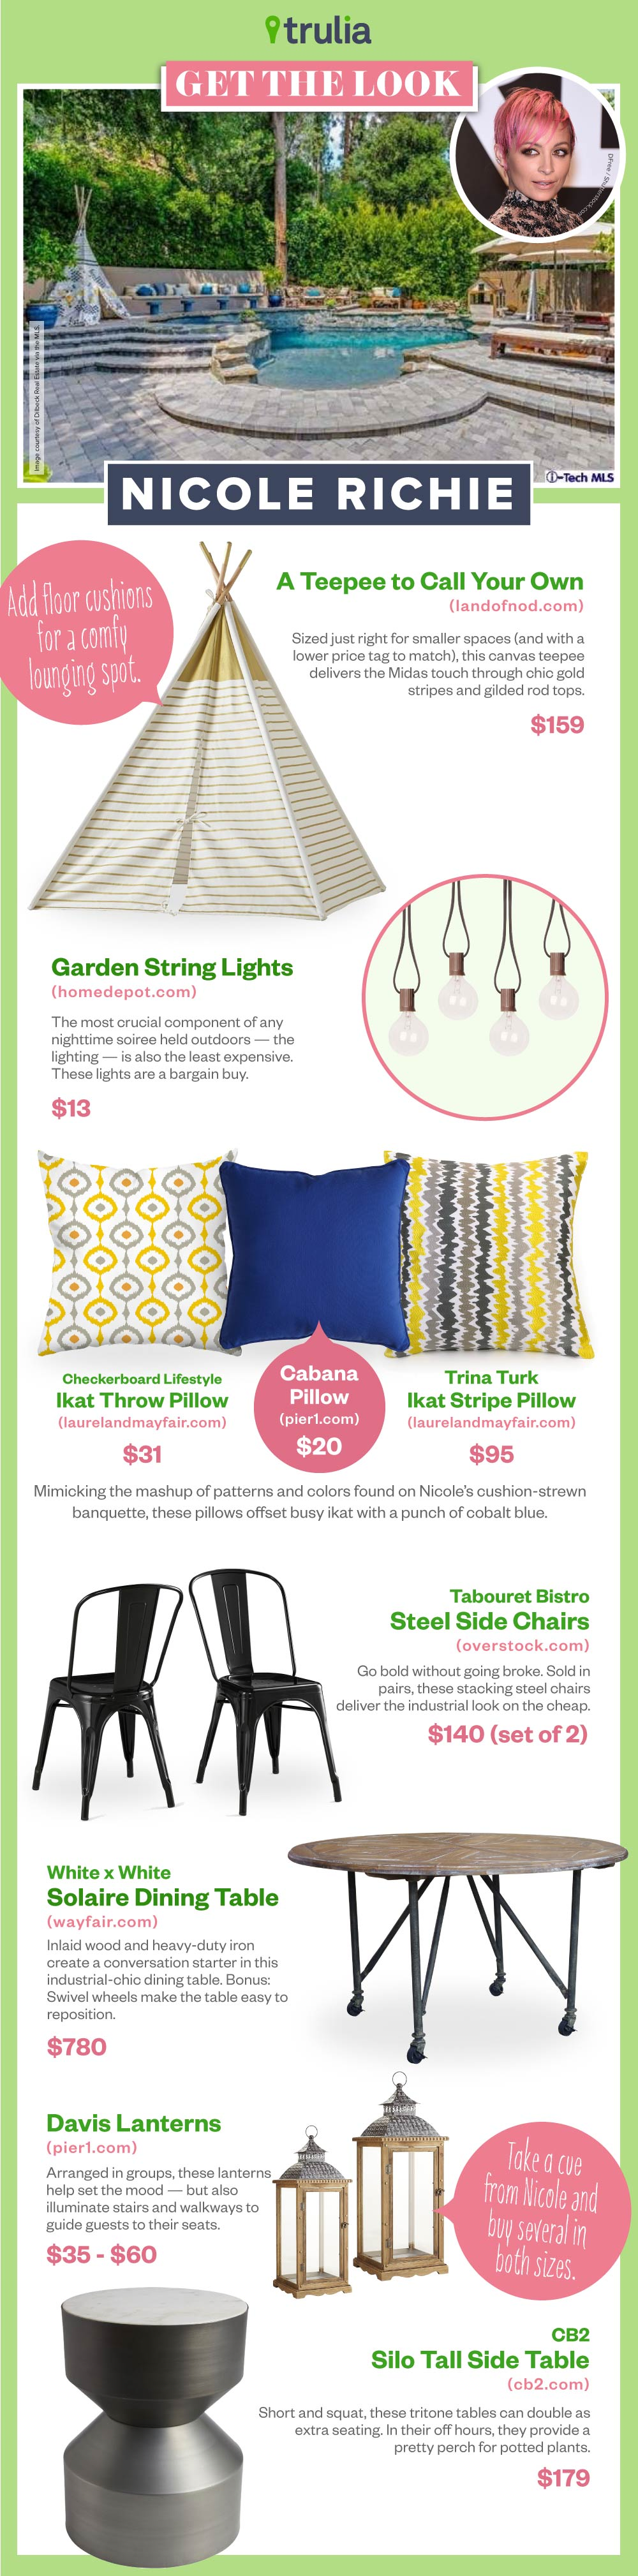 June2015-Trulia-Get-The-Look-NR